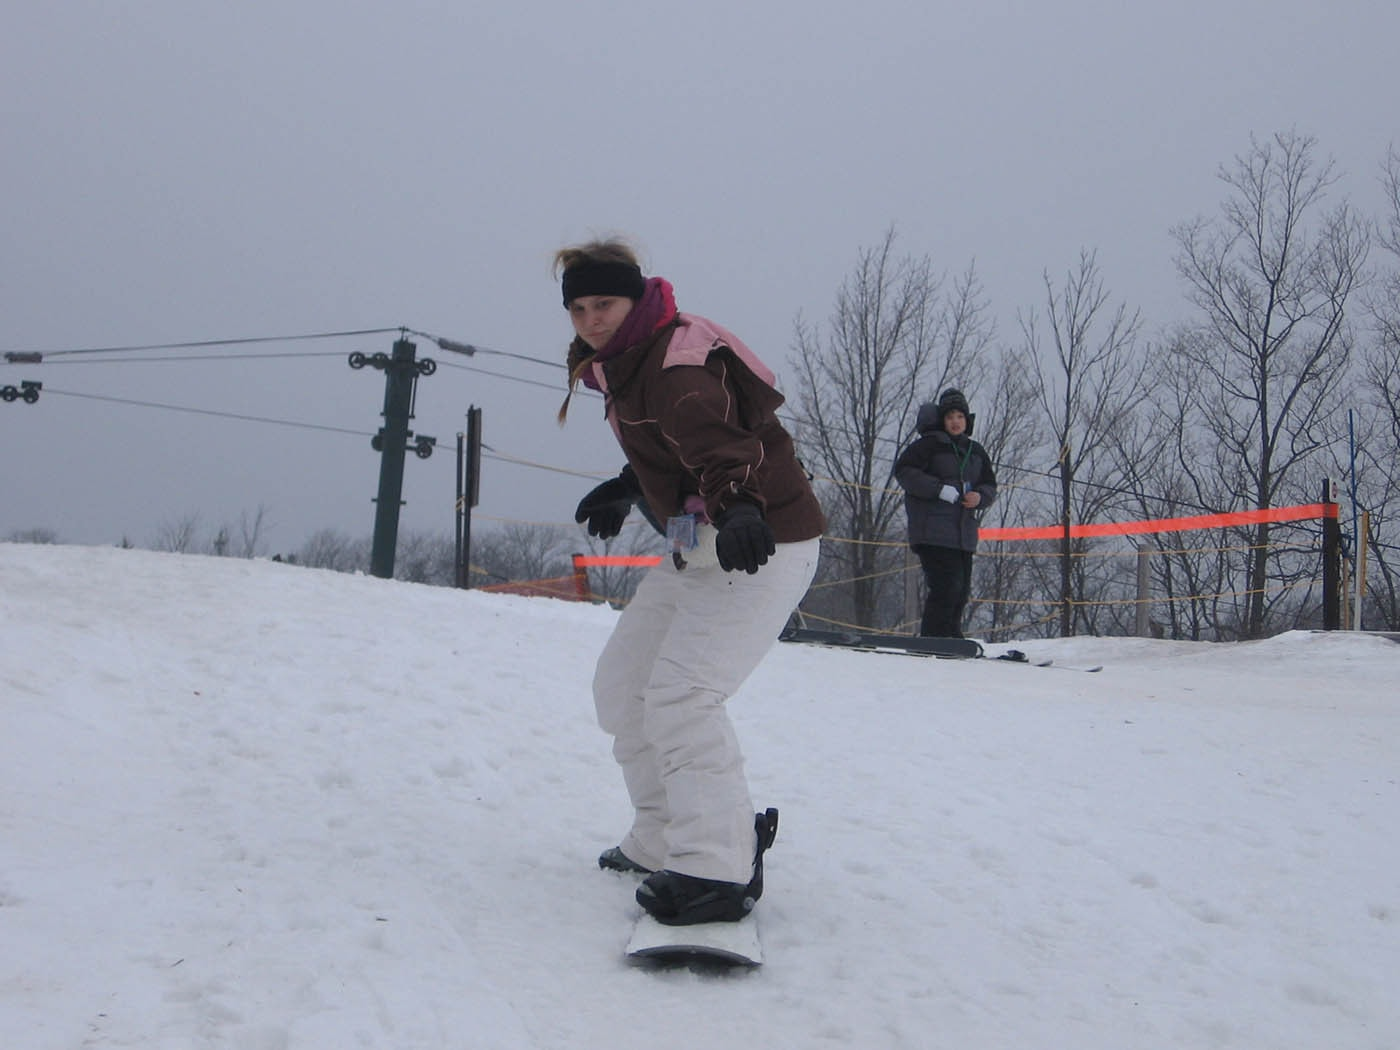 learning to snowboard at indianhead mountain • choosing figs